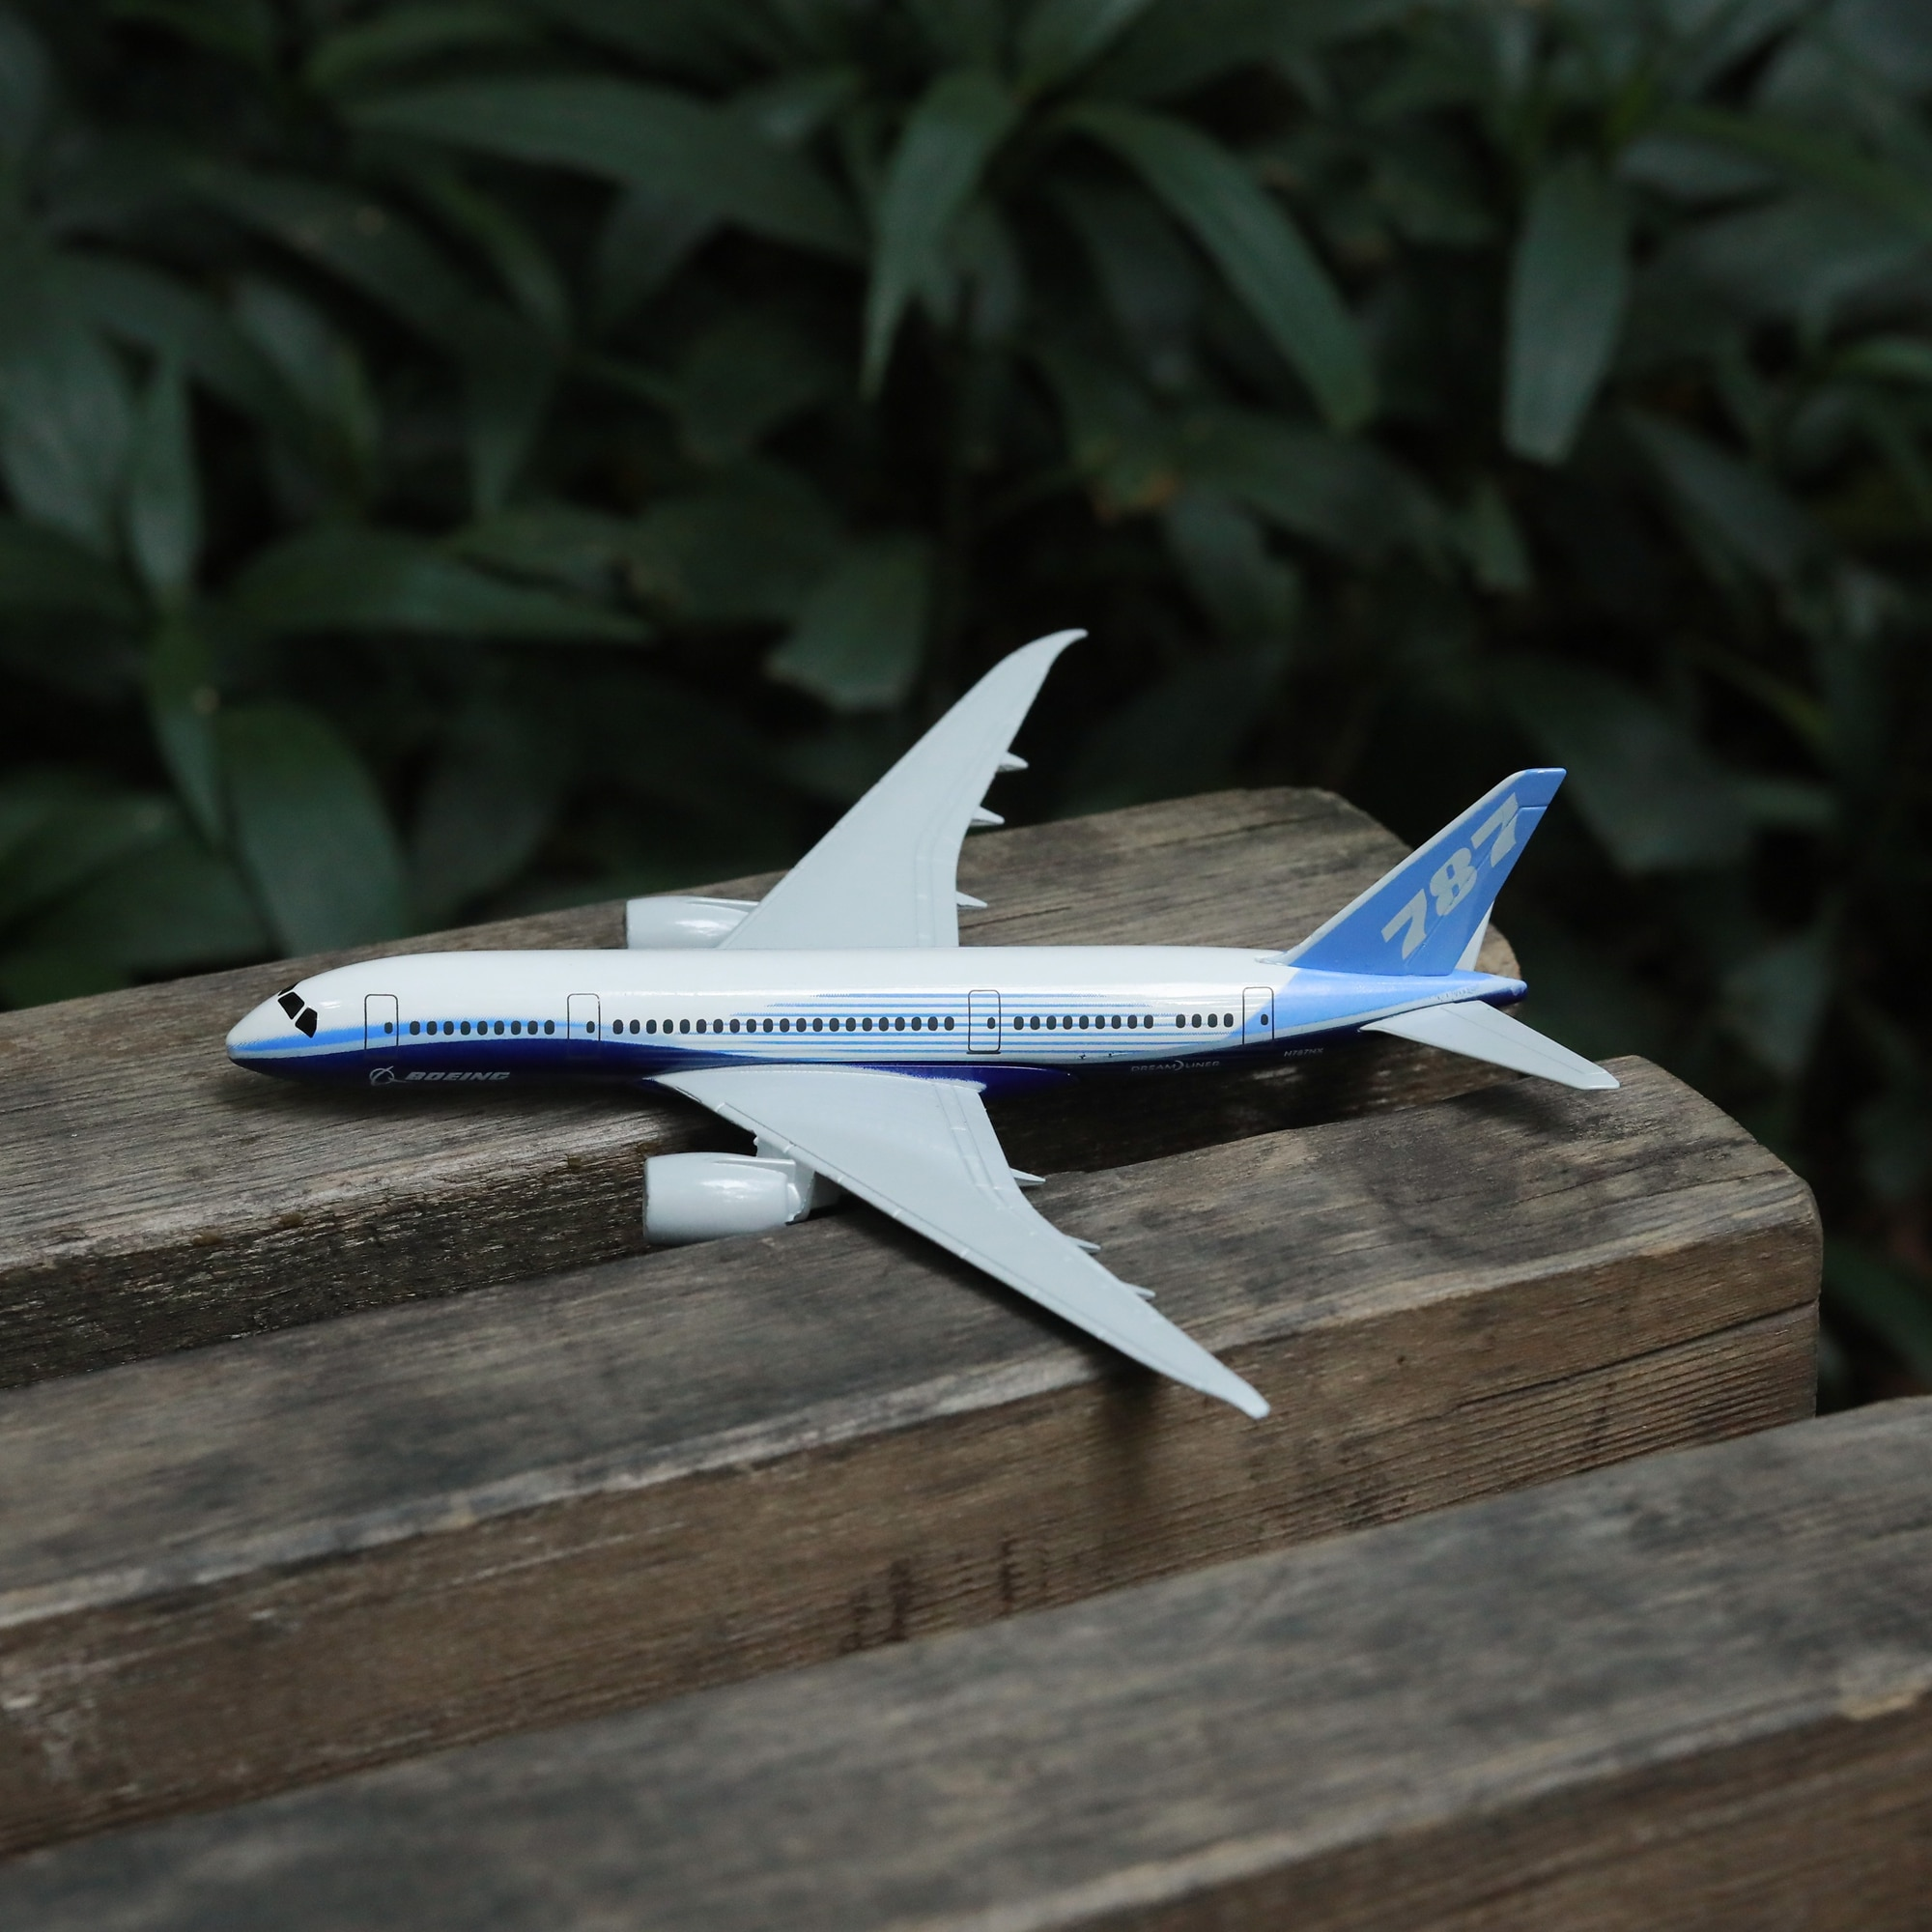 Boeing 787 Prototype Airplane Diecast Aircraft Model 6 Metal Plane Aeroplane Home Office Decor Mini Moto Toys for Children air france a380 airplane diecast aircraft model 6 metal plane aeroplane home office decor mini moto toys for children